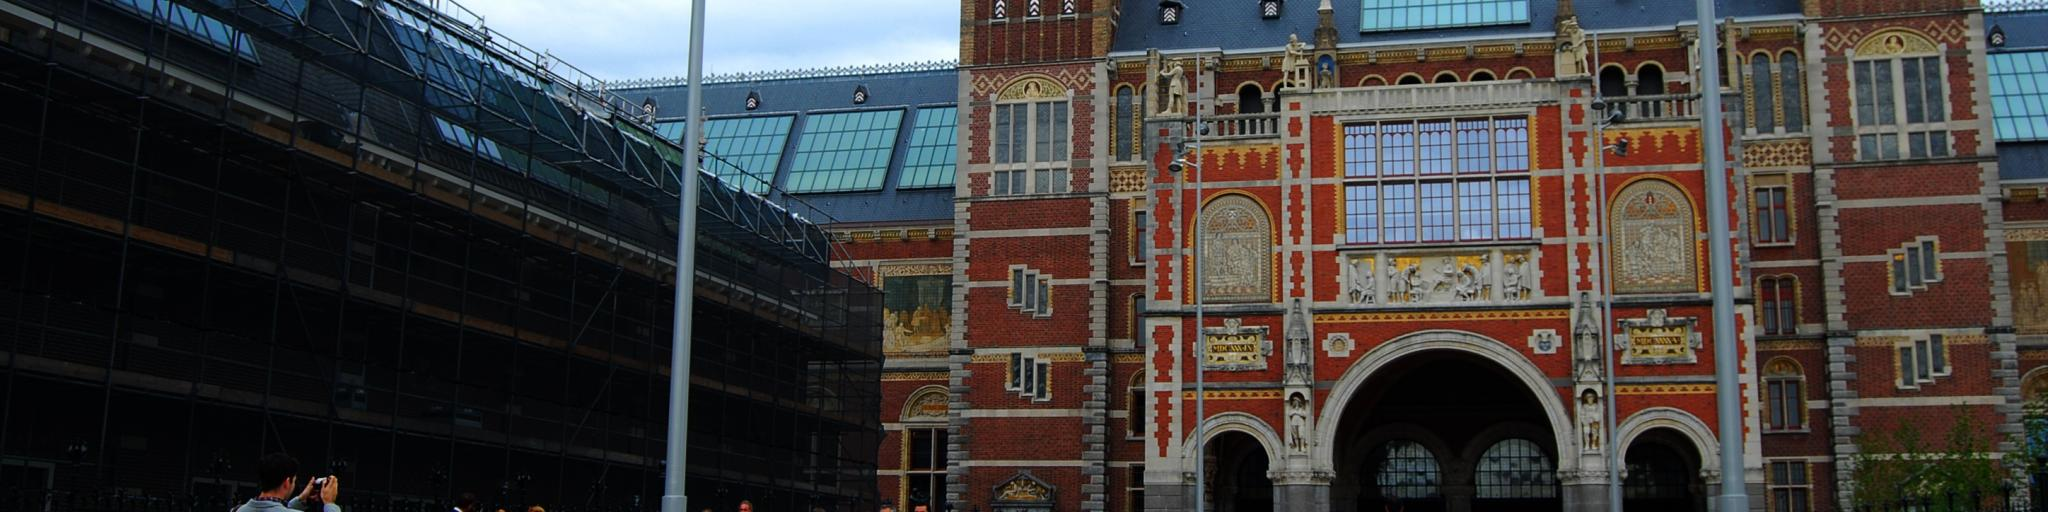 Tourists come in and out of the Rijksmuseum,  a grand red building in Amsterdam